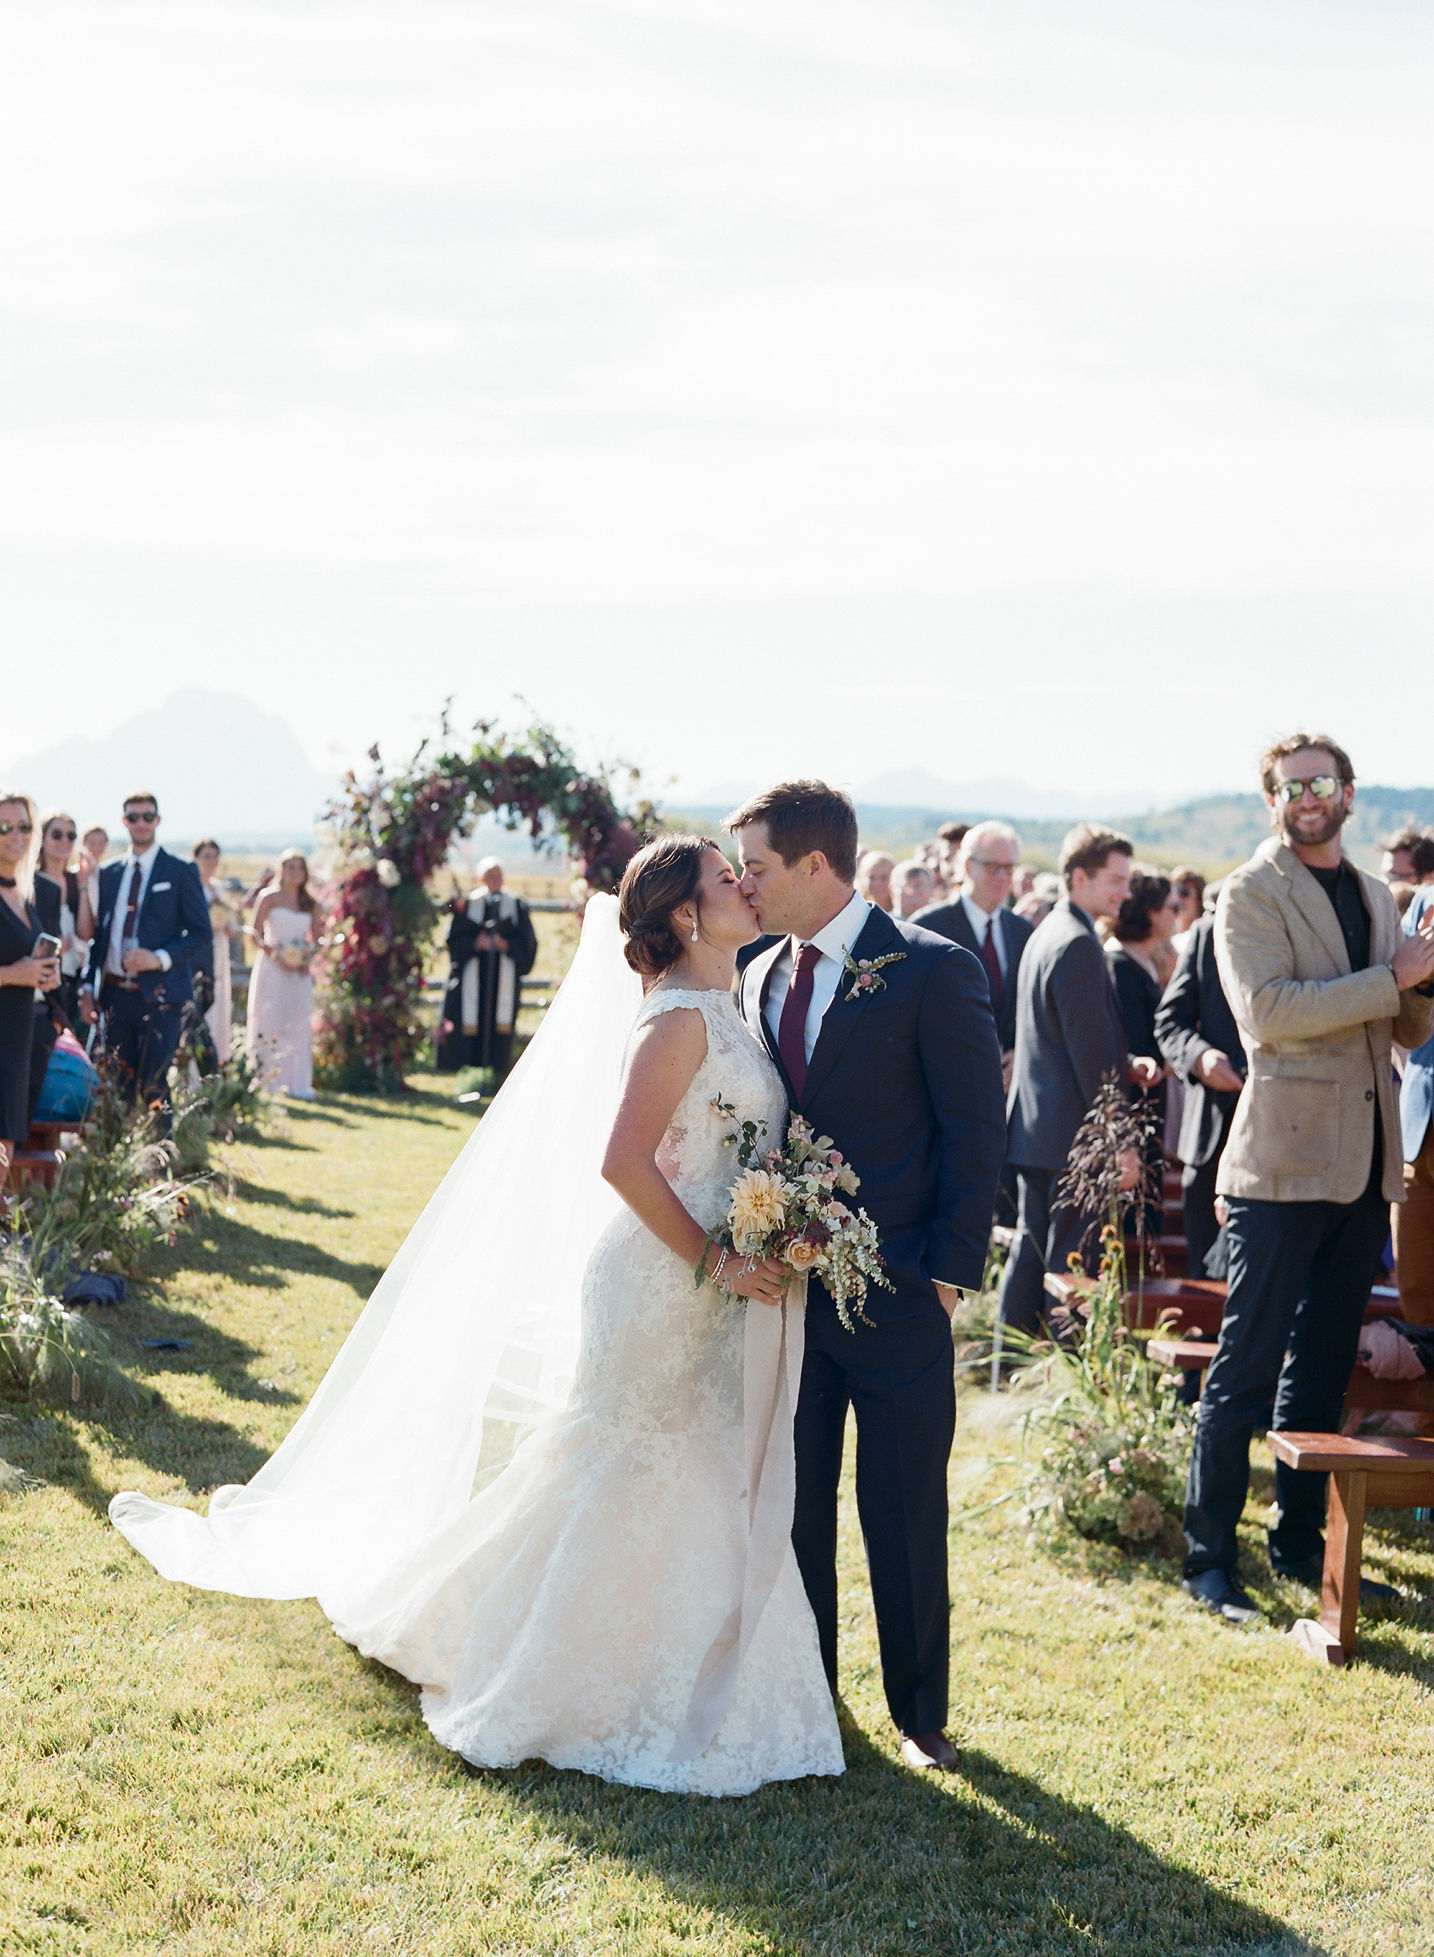 bride and groom kissing after wedding ceremony